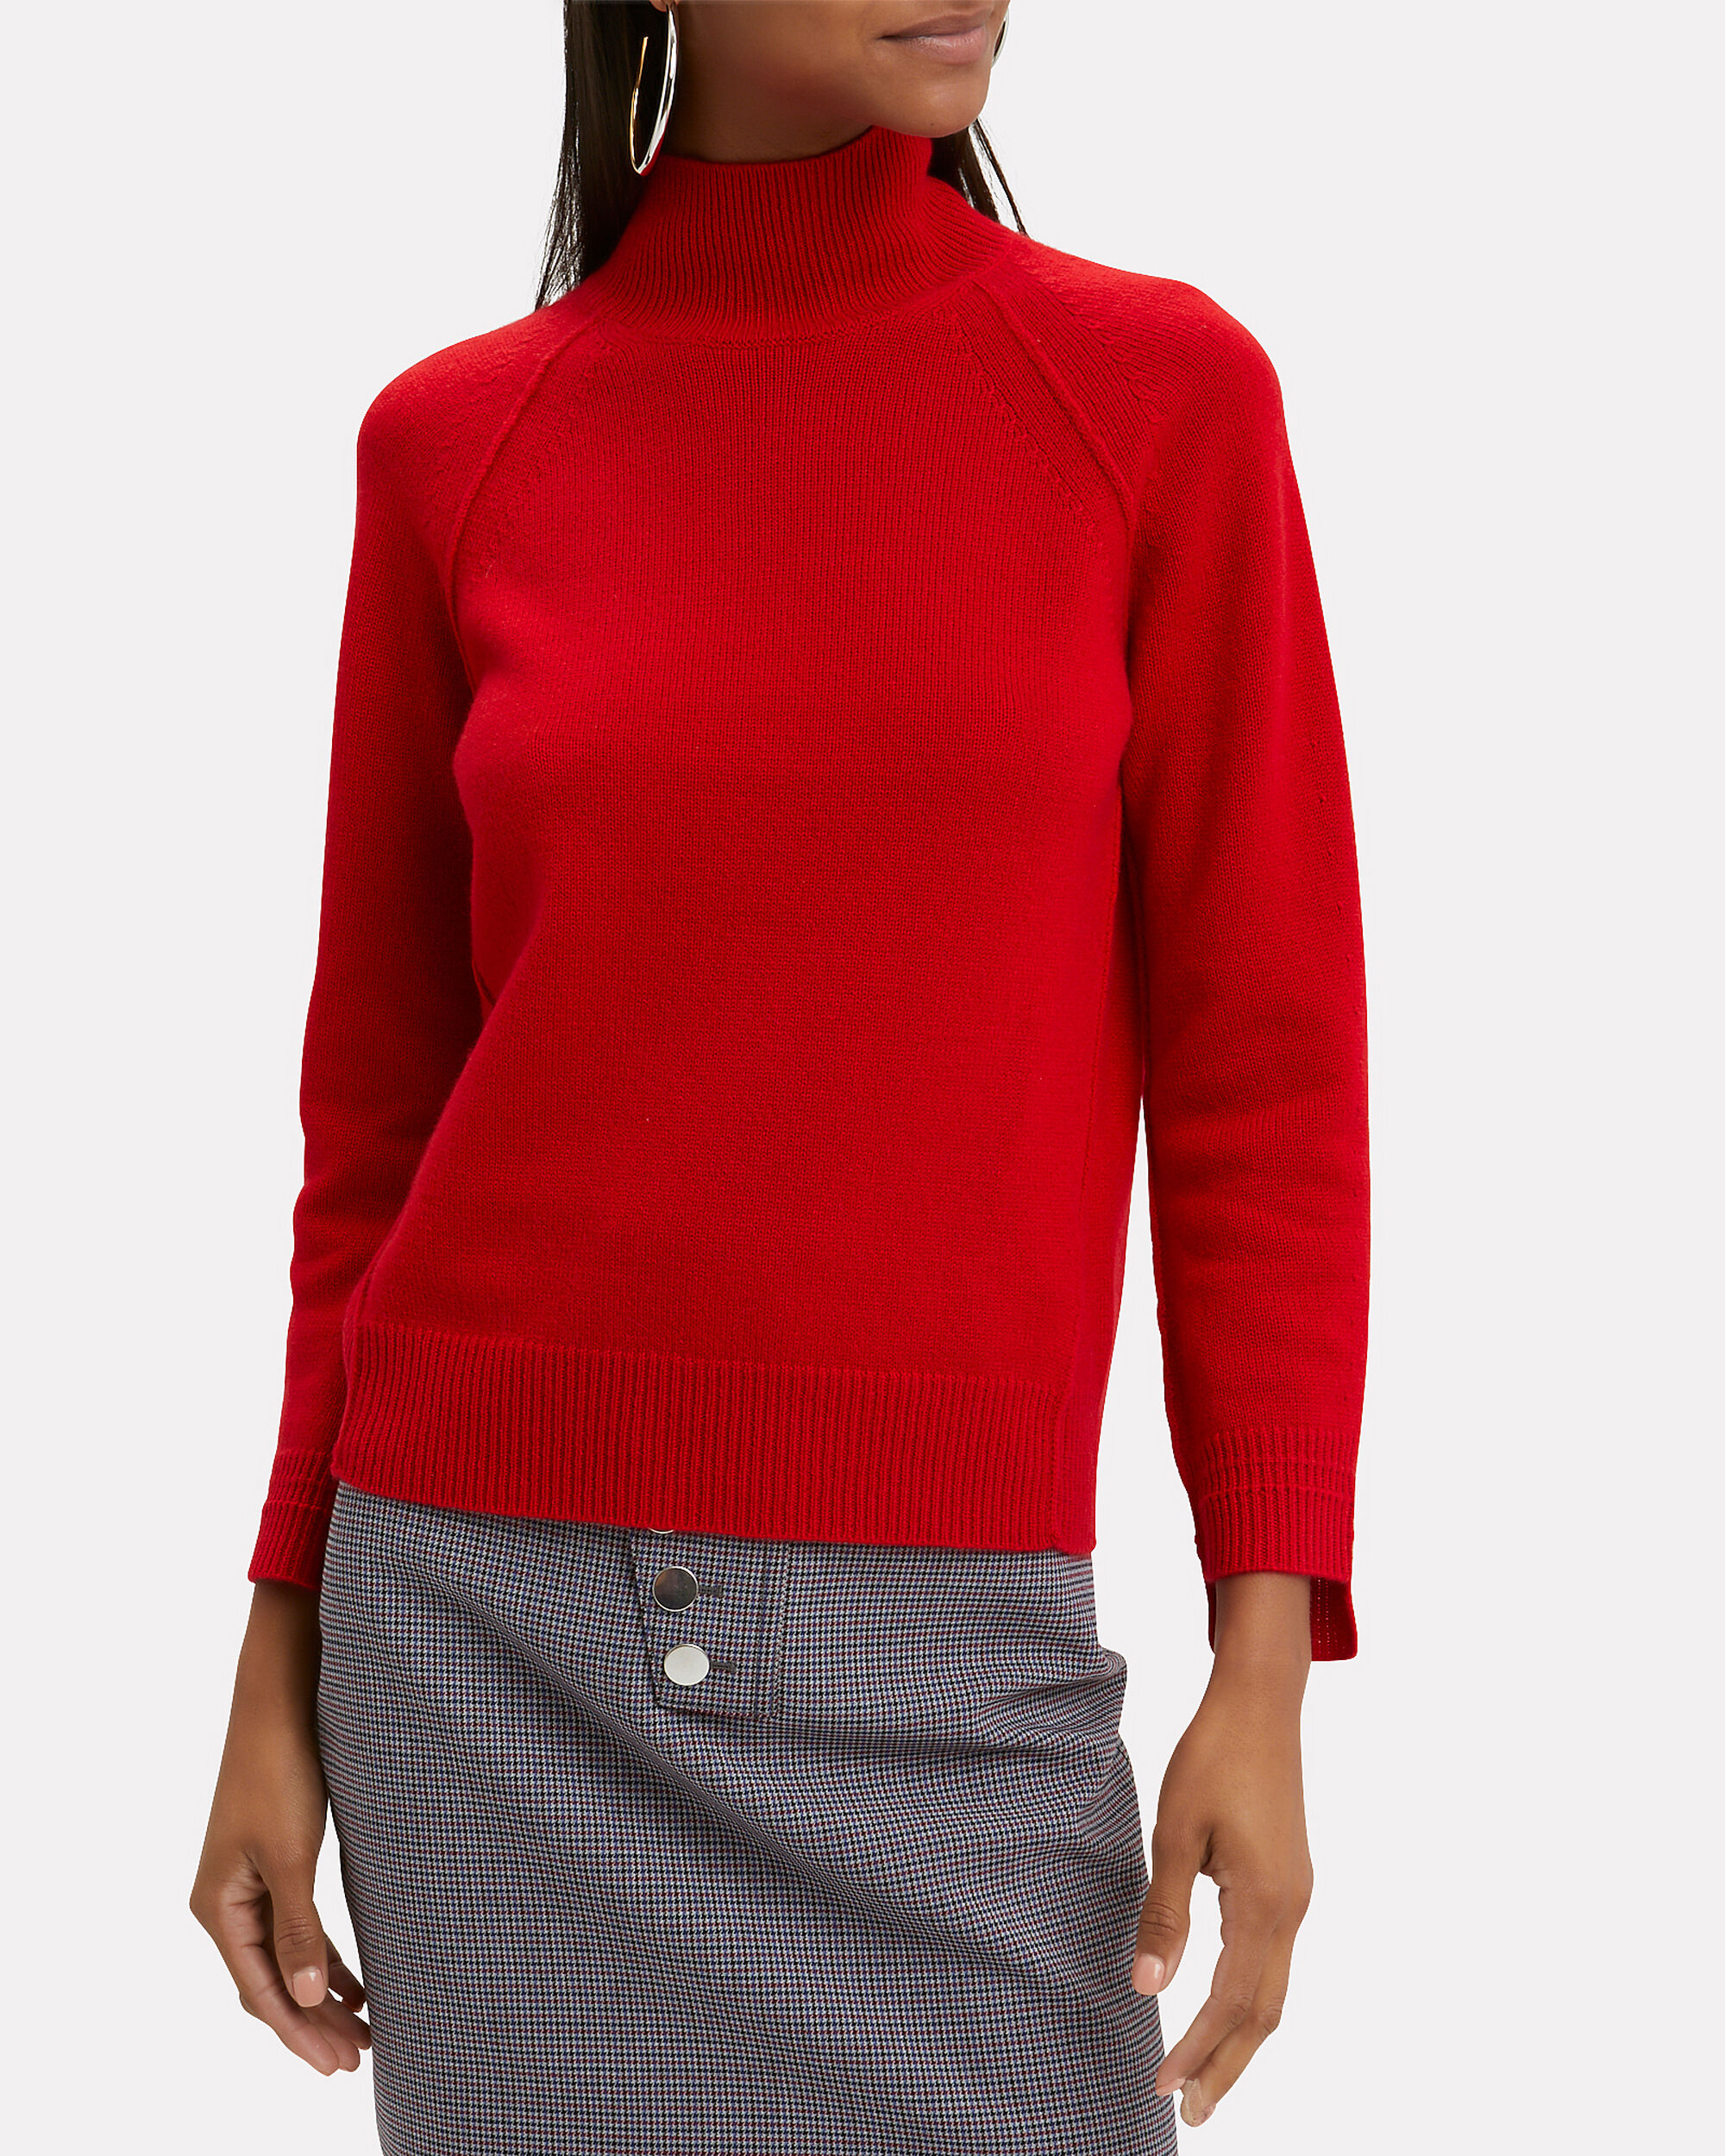 Cashmere Red Turtleneck Sweater, RED, hi-res